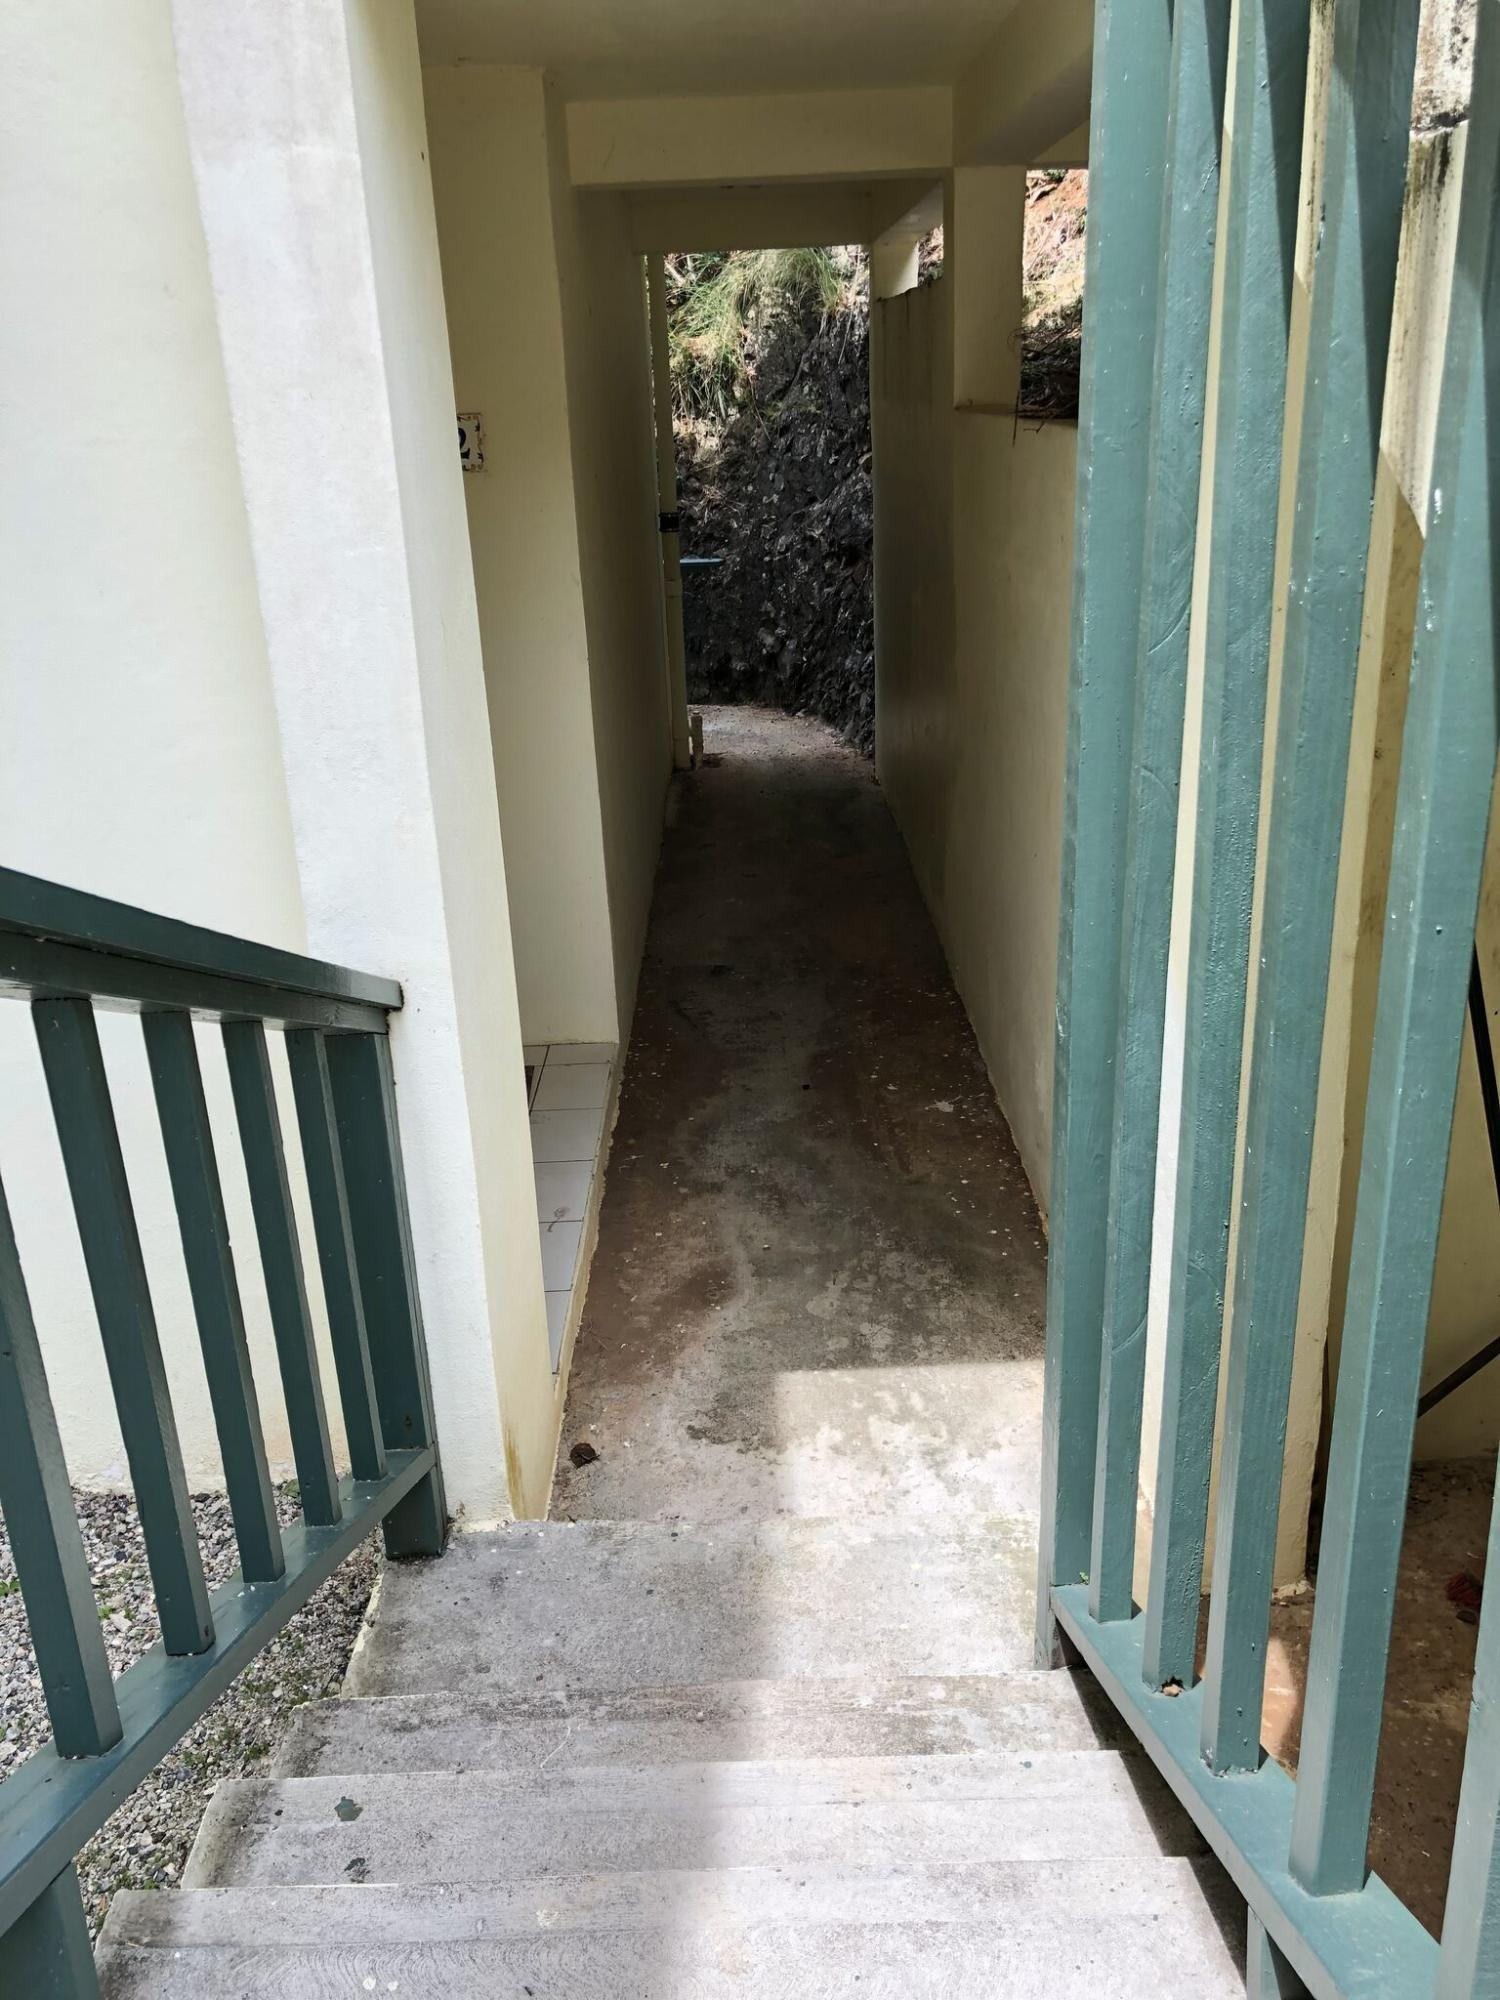 Staircase and passageway